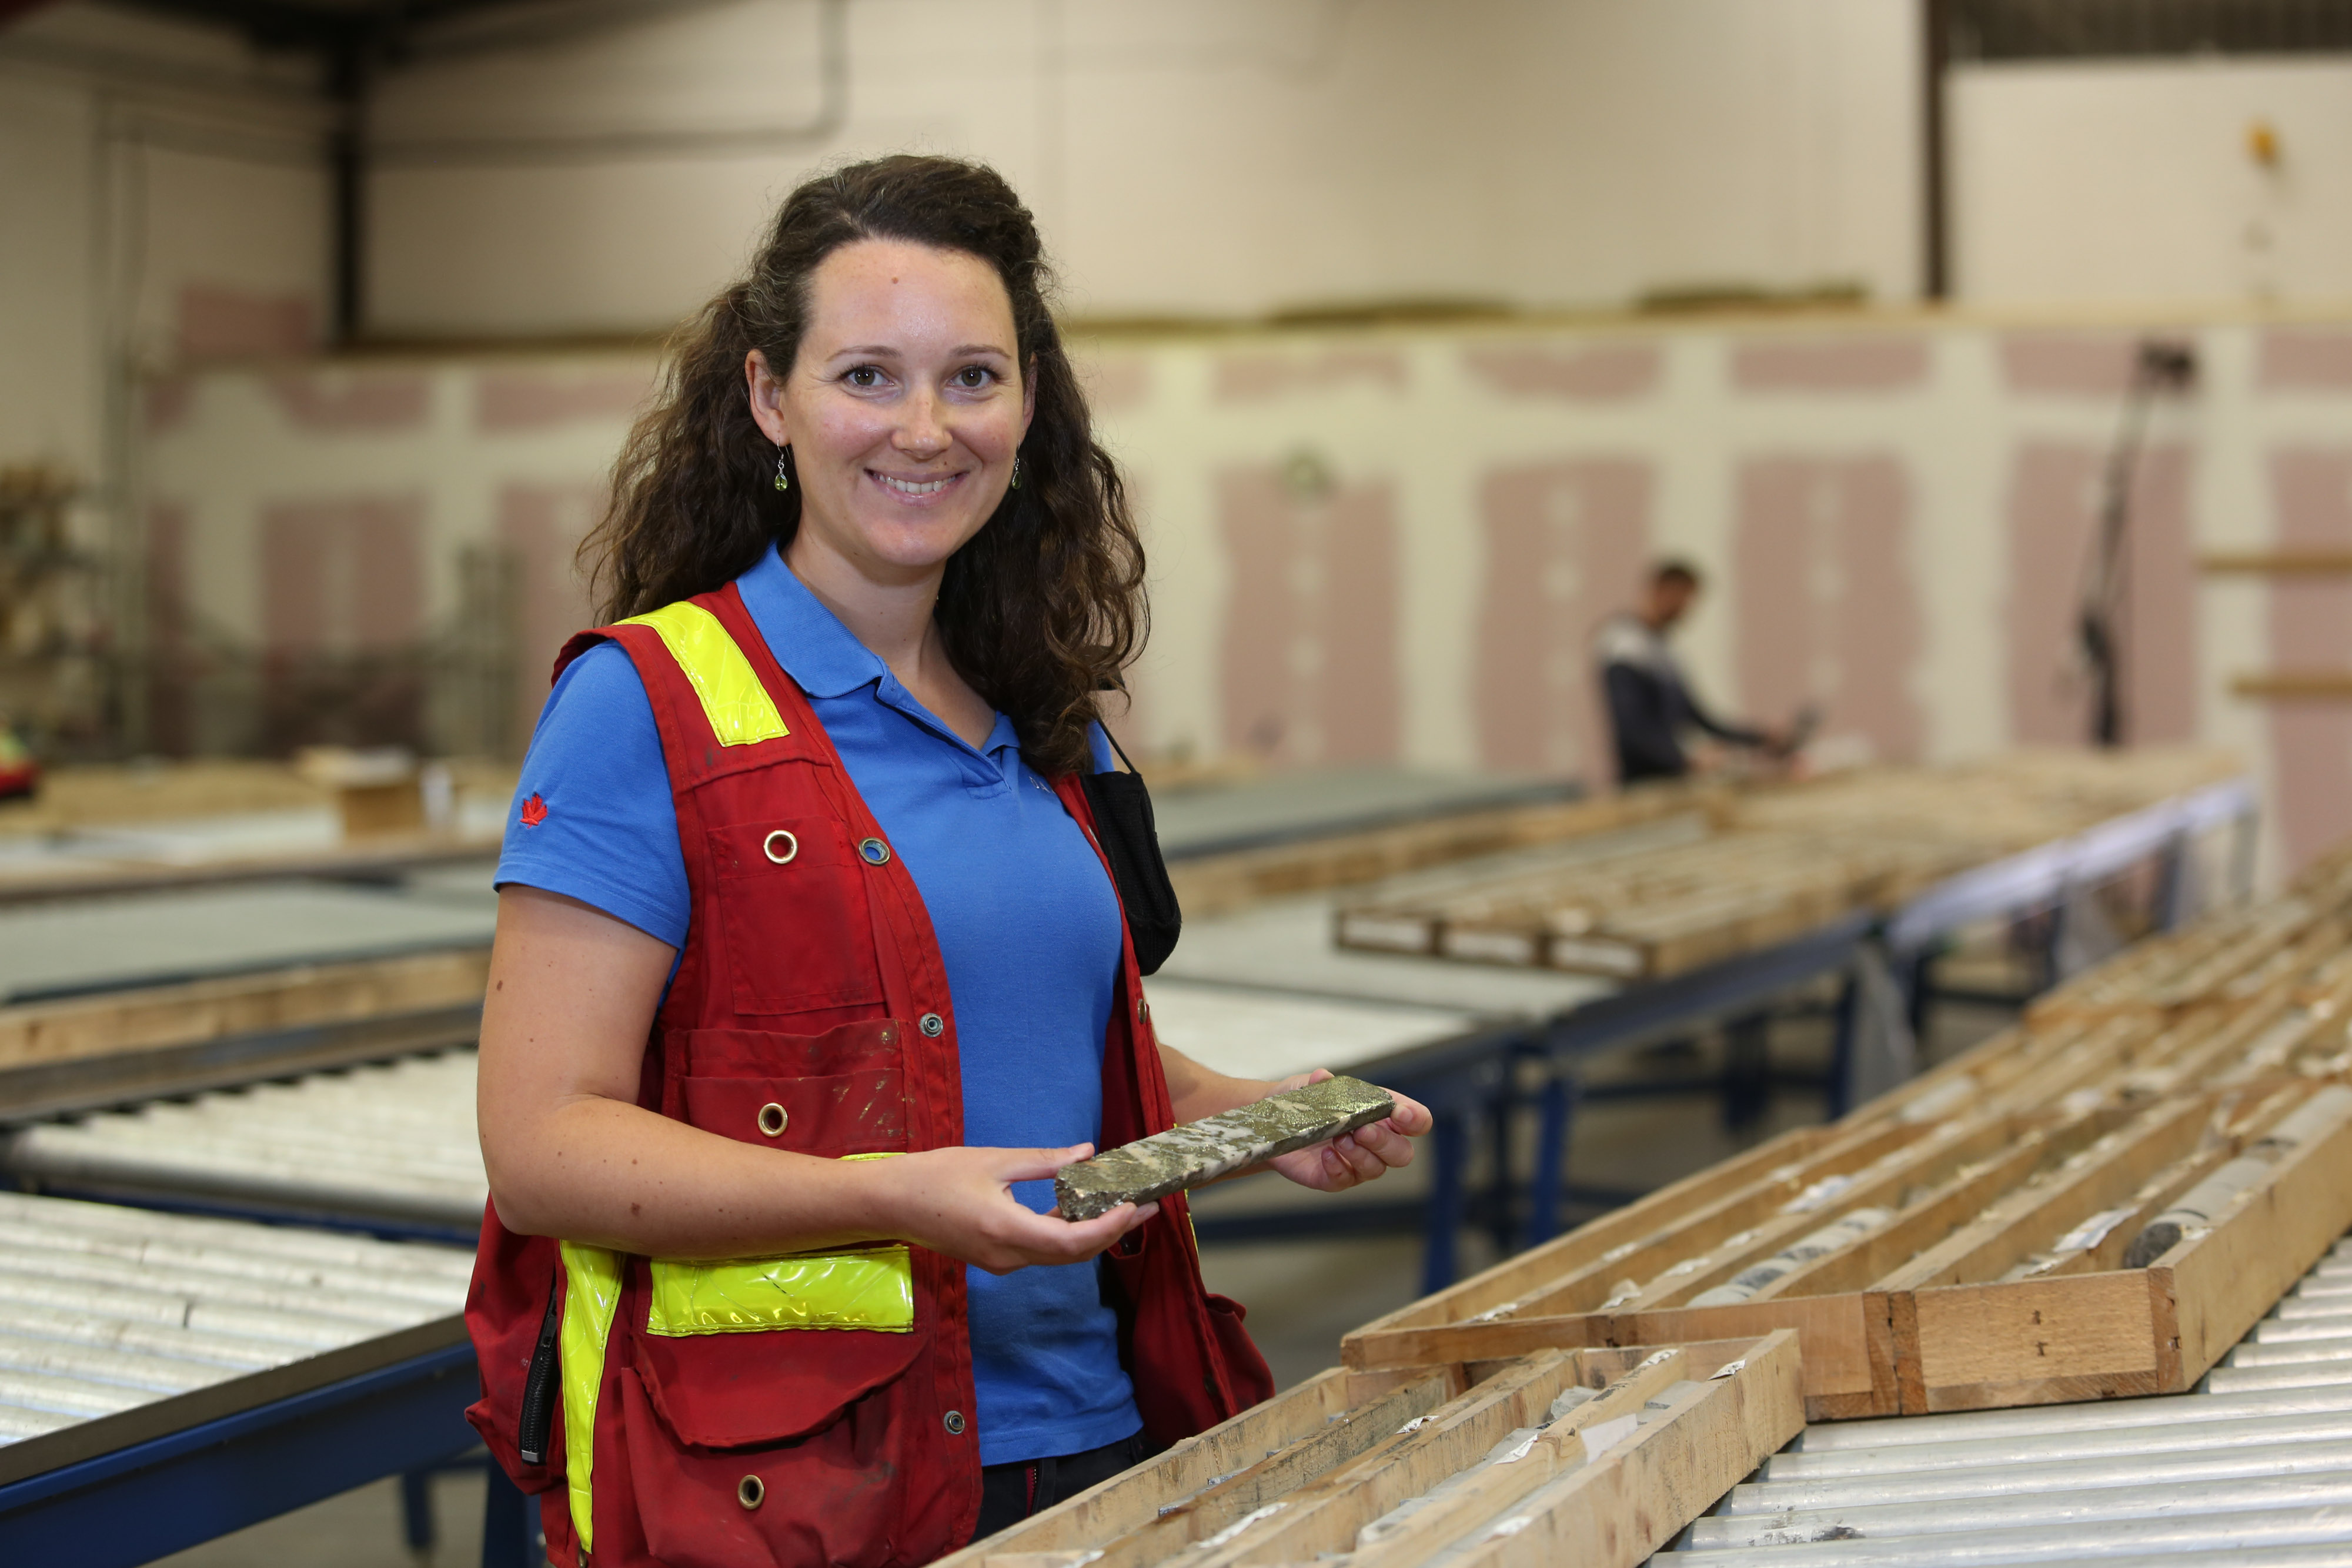 Day in the life of Emma, Geology and Exploration Manager